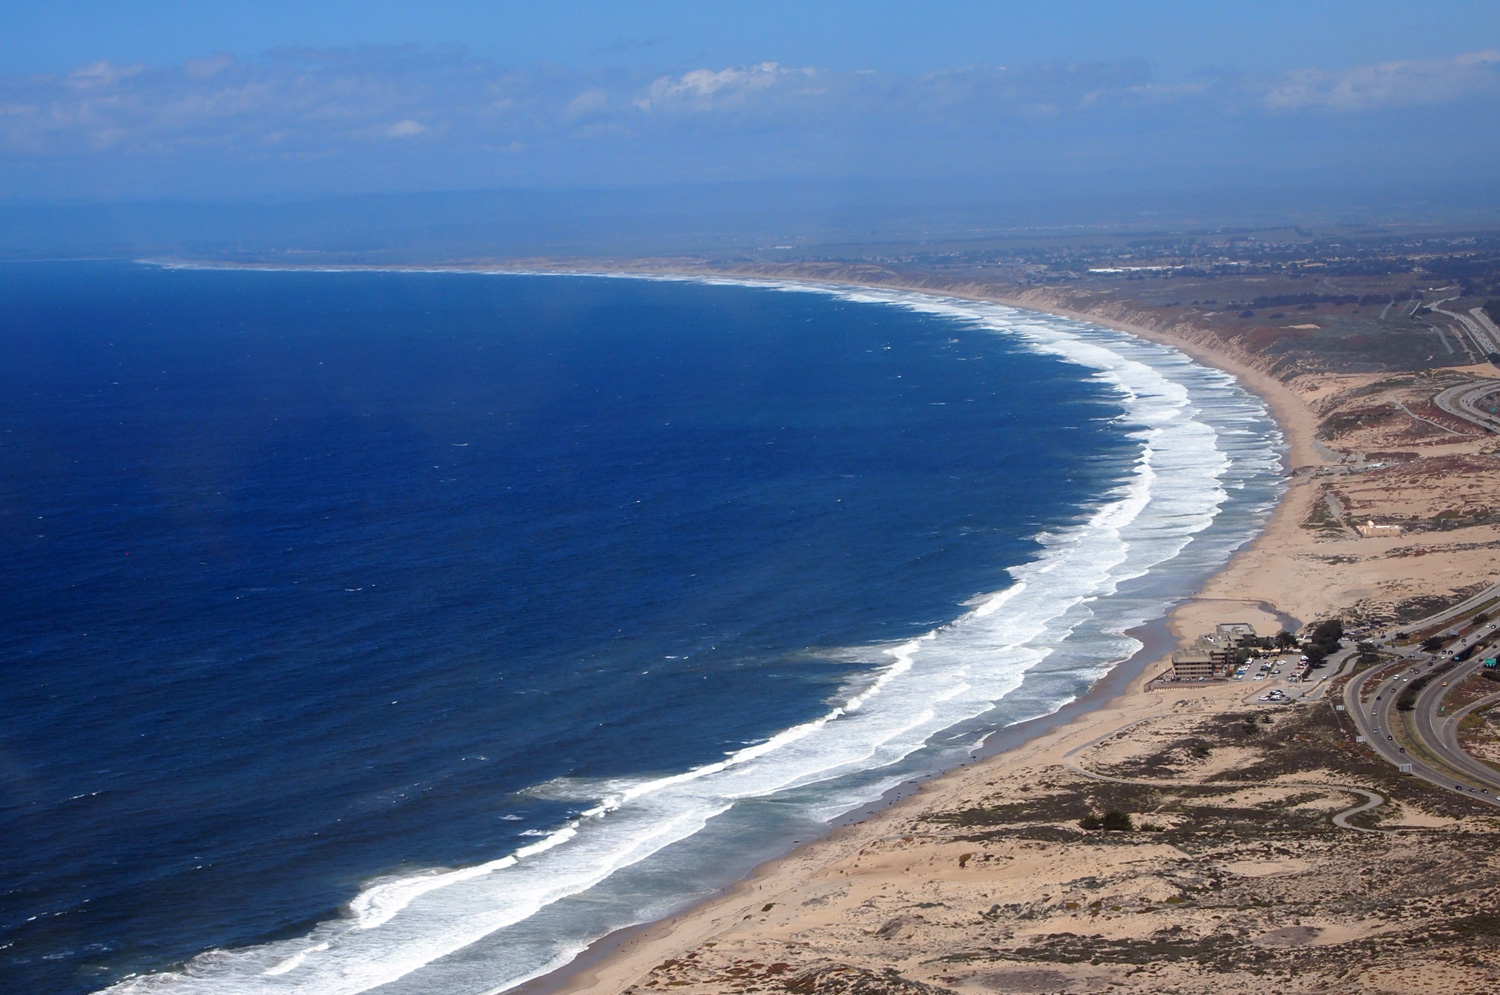 helicopter view of Monterey Bay